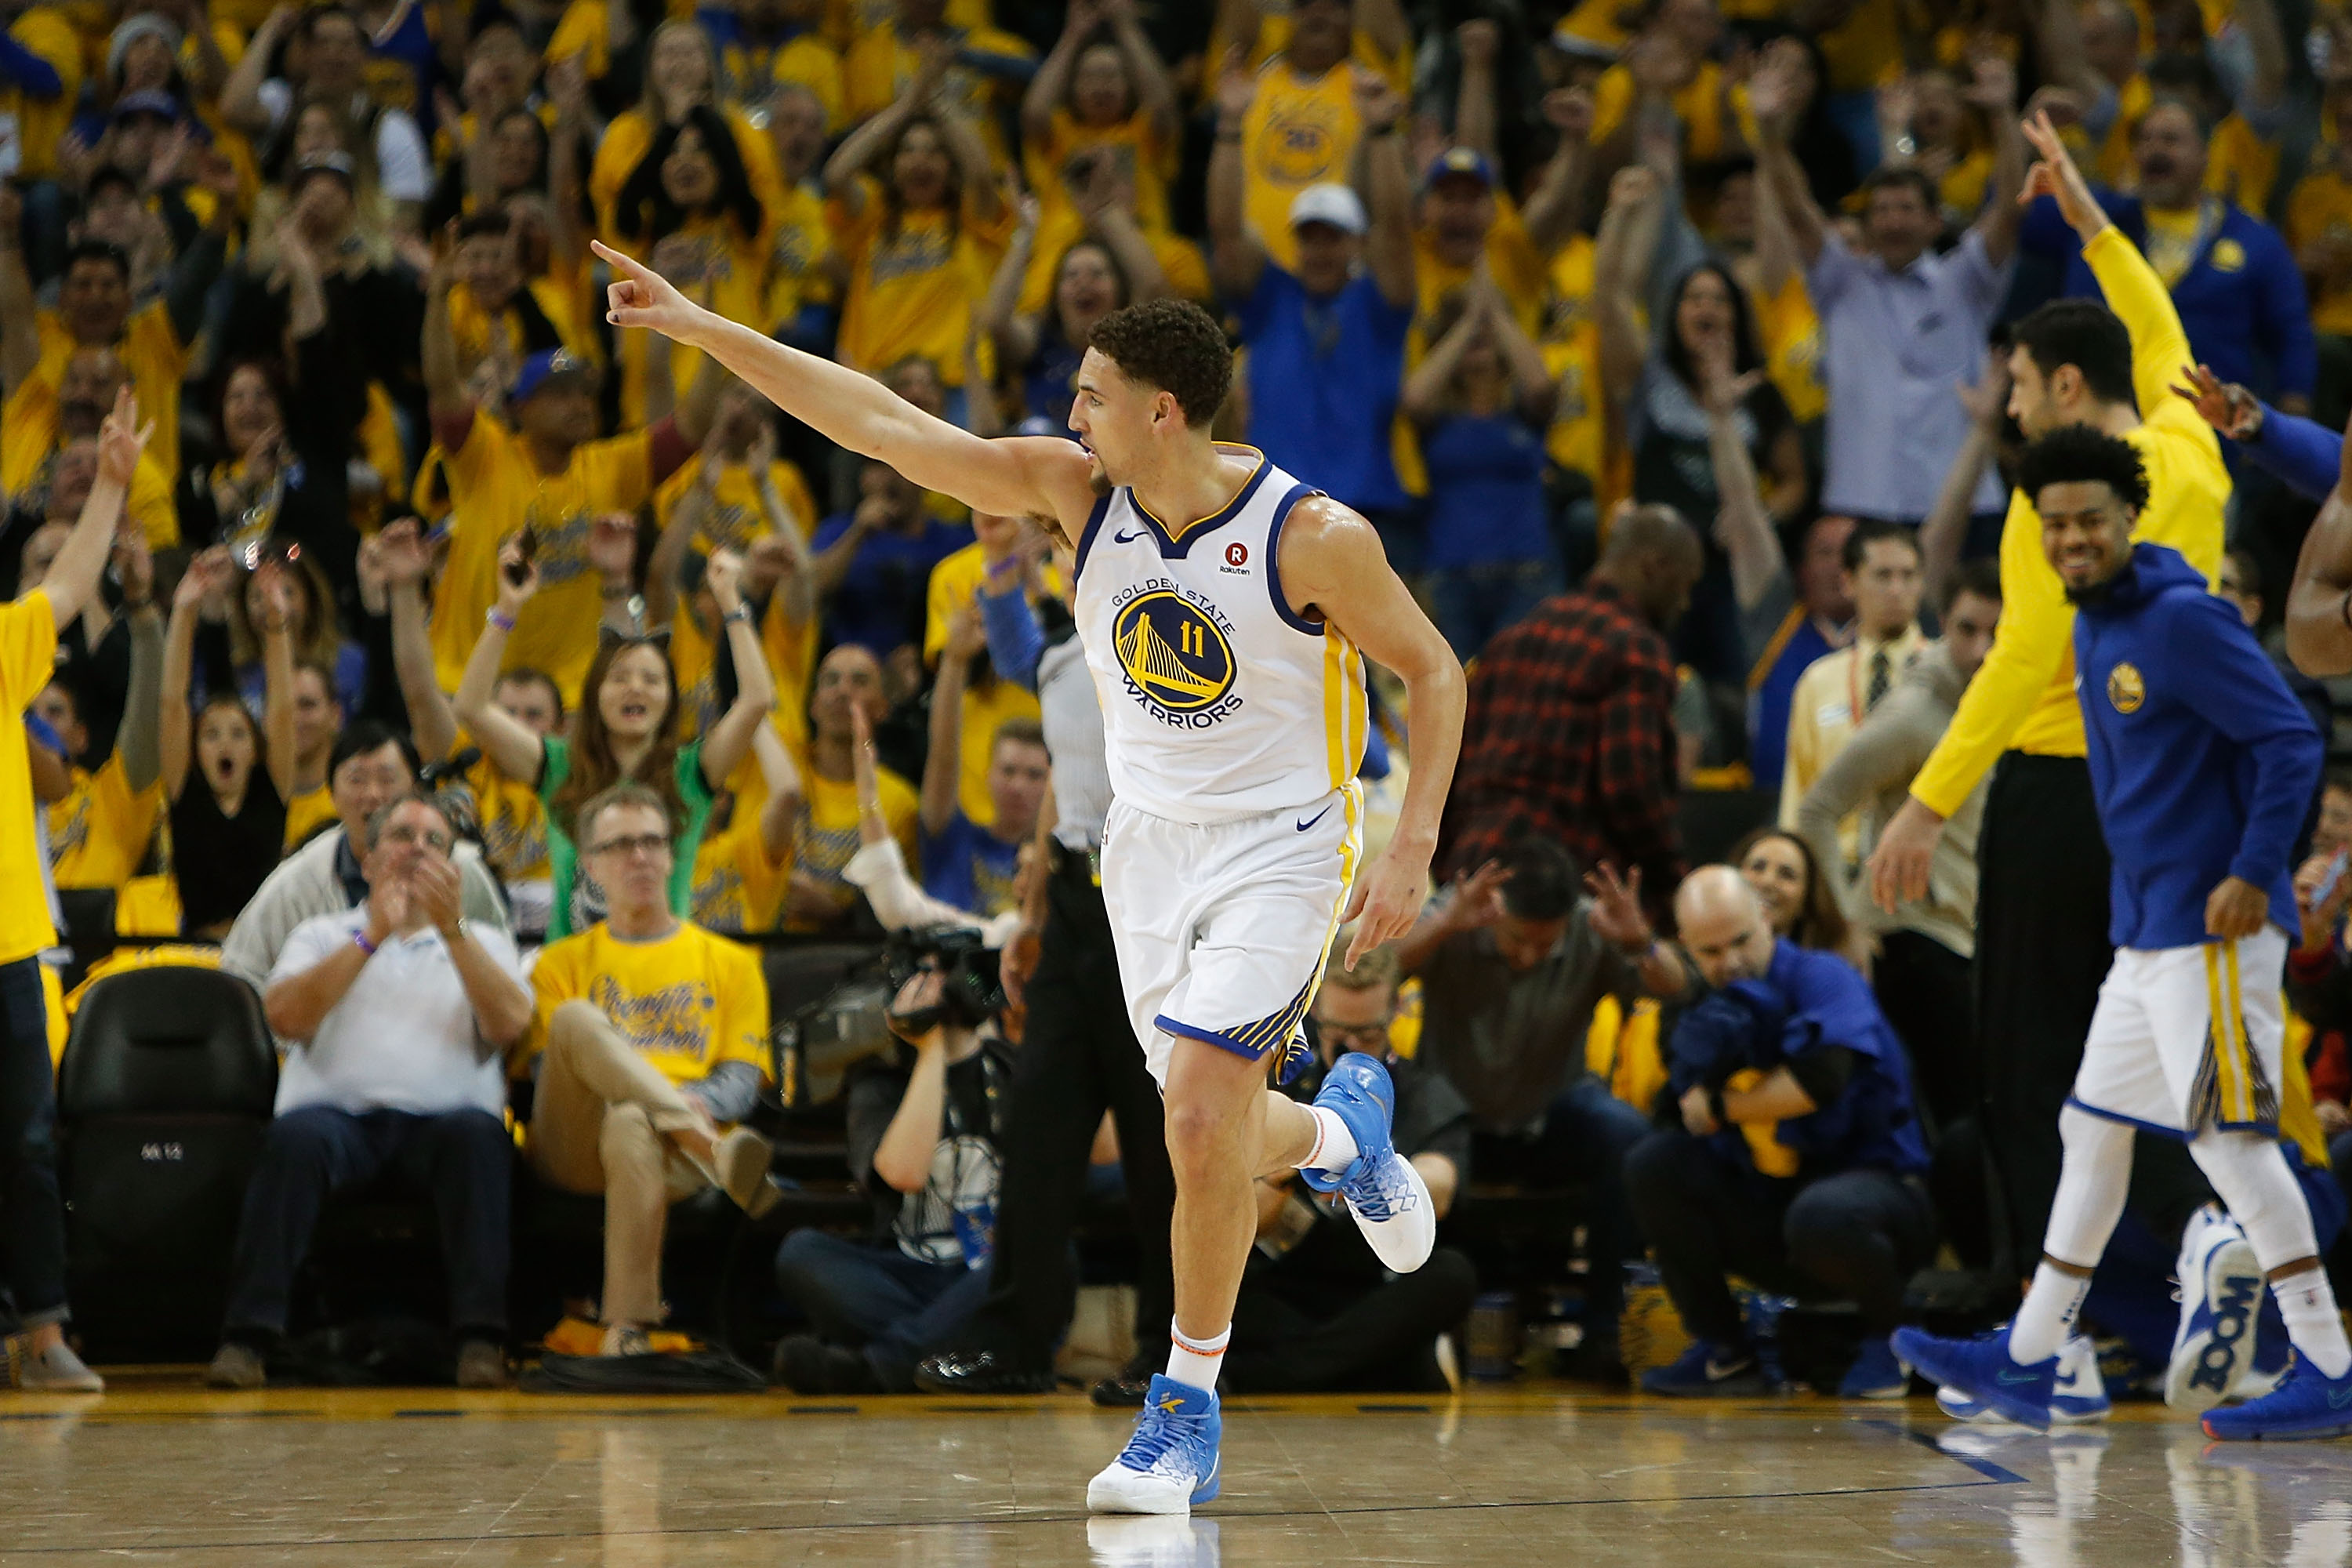 fdac80149f0b What rumors of Klay Thompson s contract extension means for the Warriors - Golden  State Of Mind